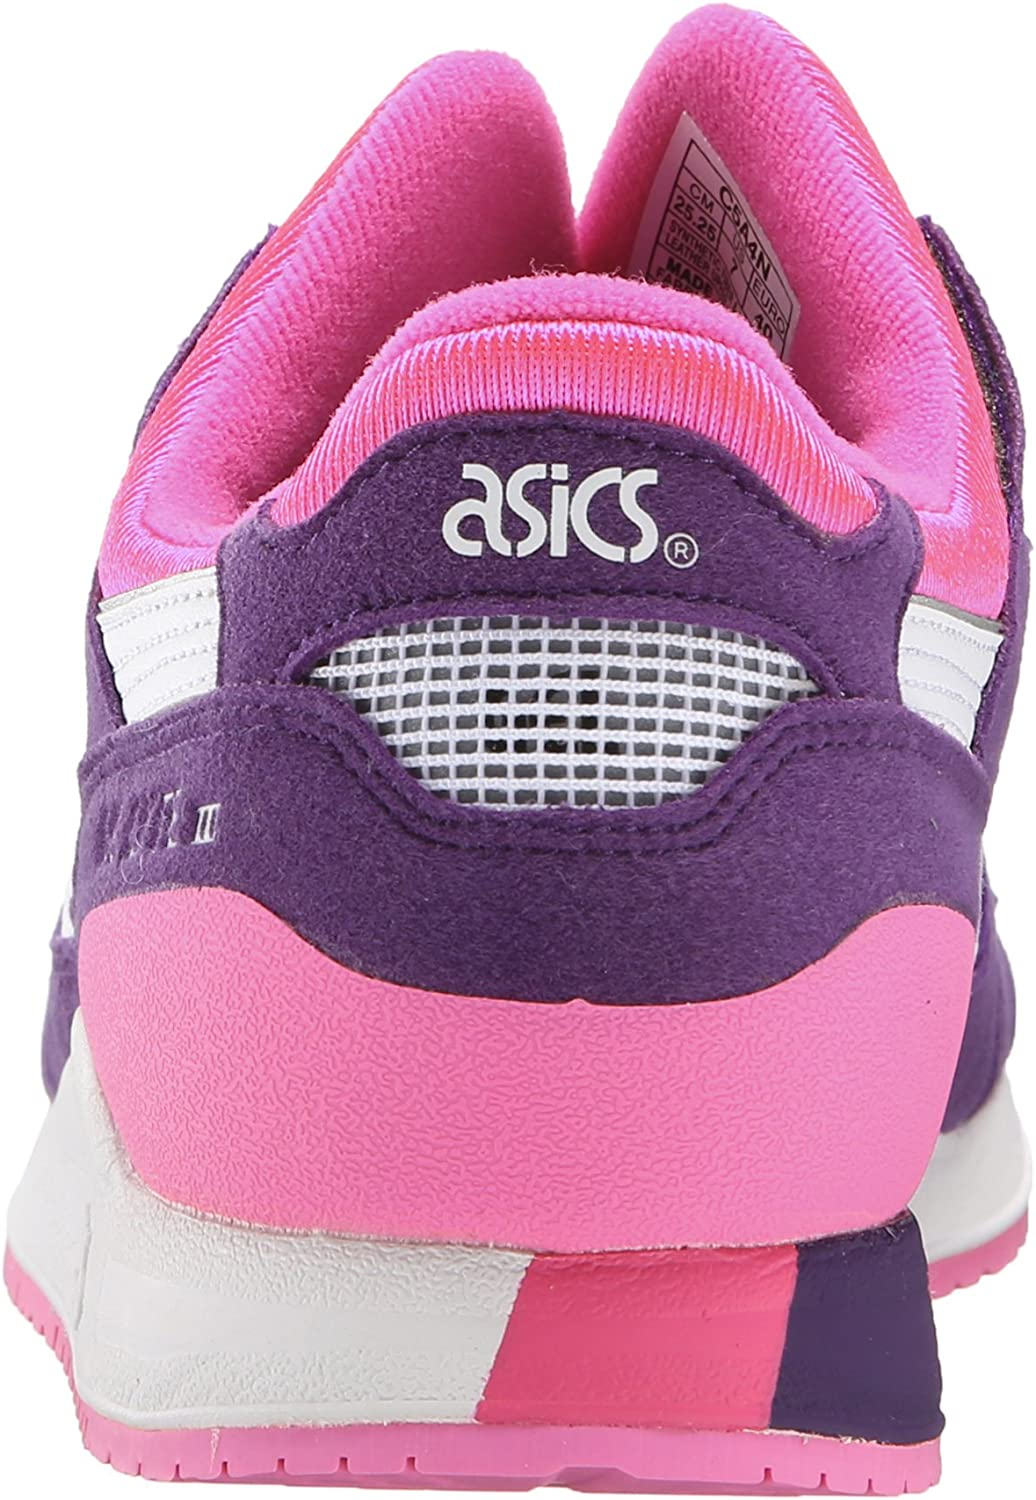 ASICS Gel Lyte III GS Running Shoe (Big Kid) Purple/White